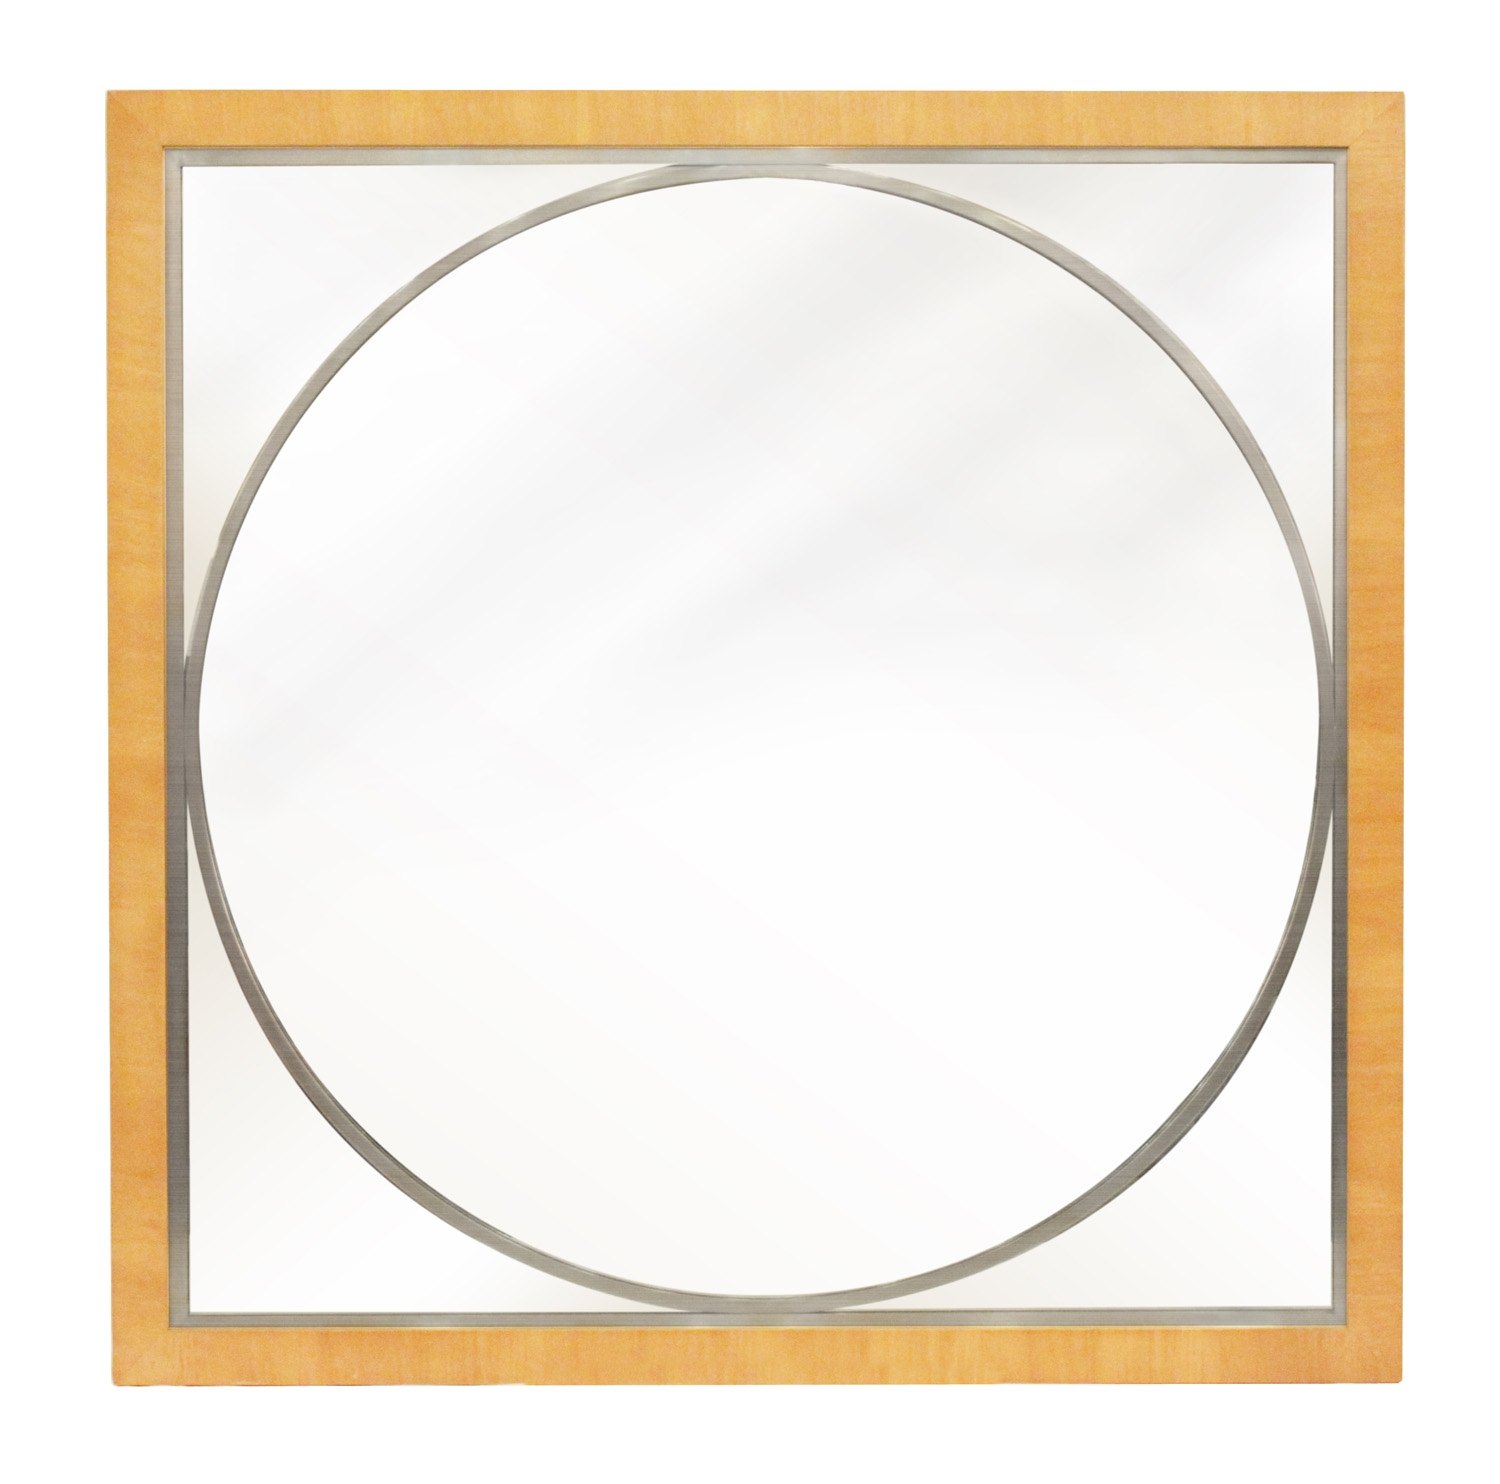 Spectre 30 square + circle inside mirror161 mirror only hires.jpg